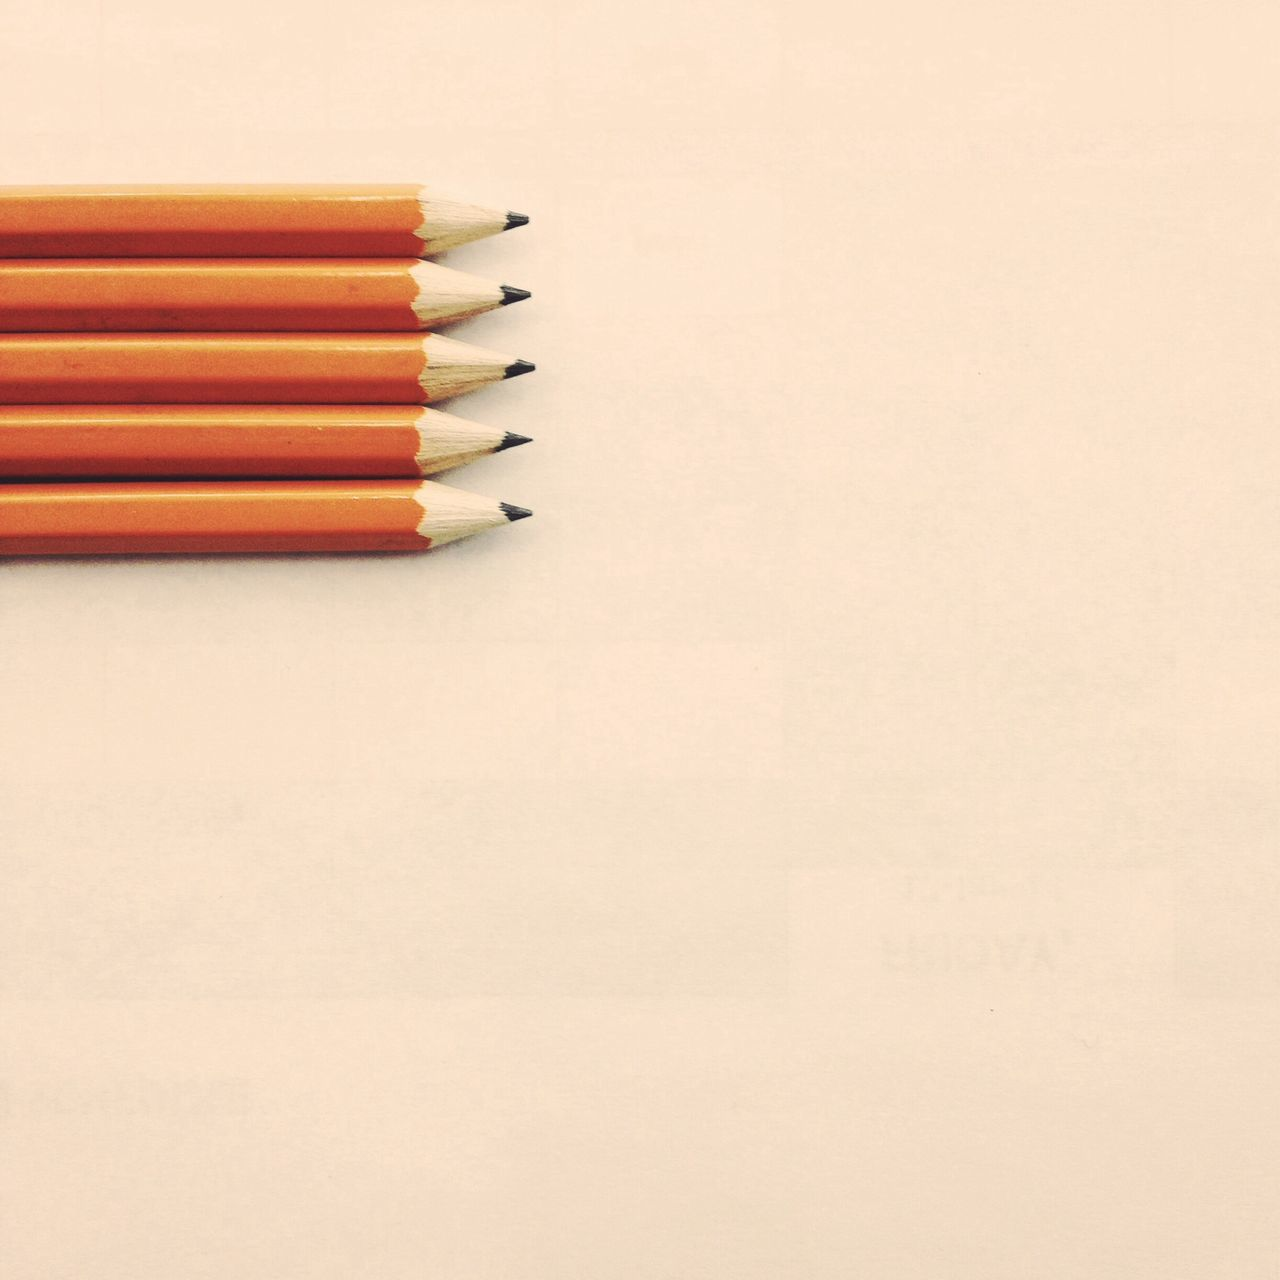 Beautiful stock photos of pencil, Arrangement, Art And Craft Equipment, Choice, Colored Background